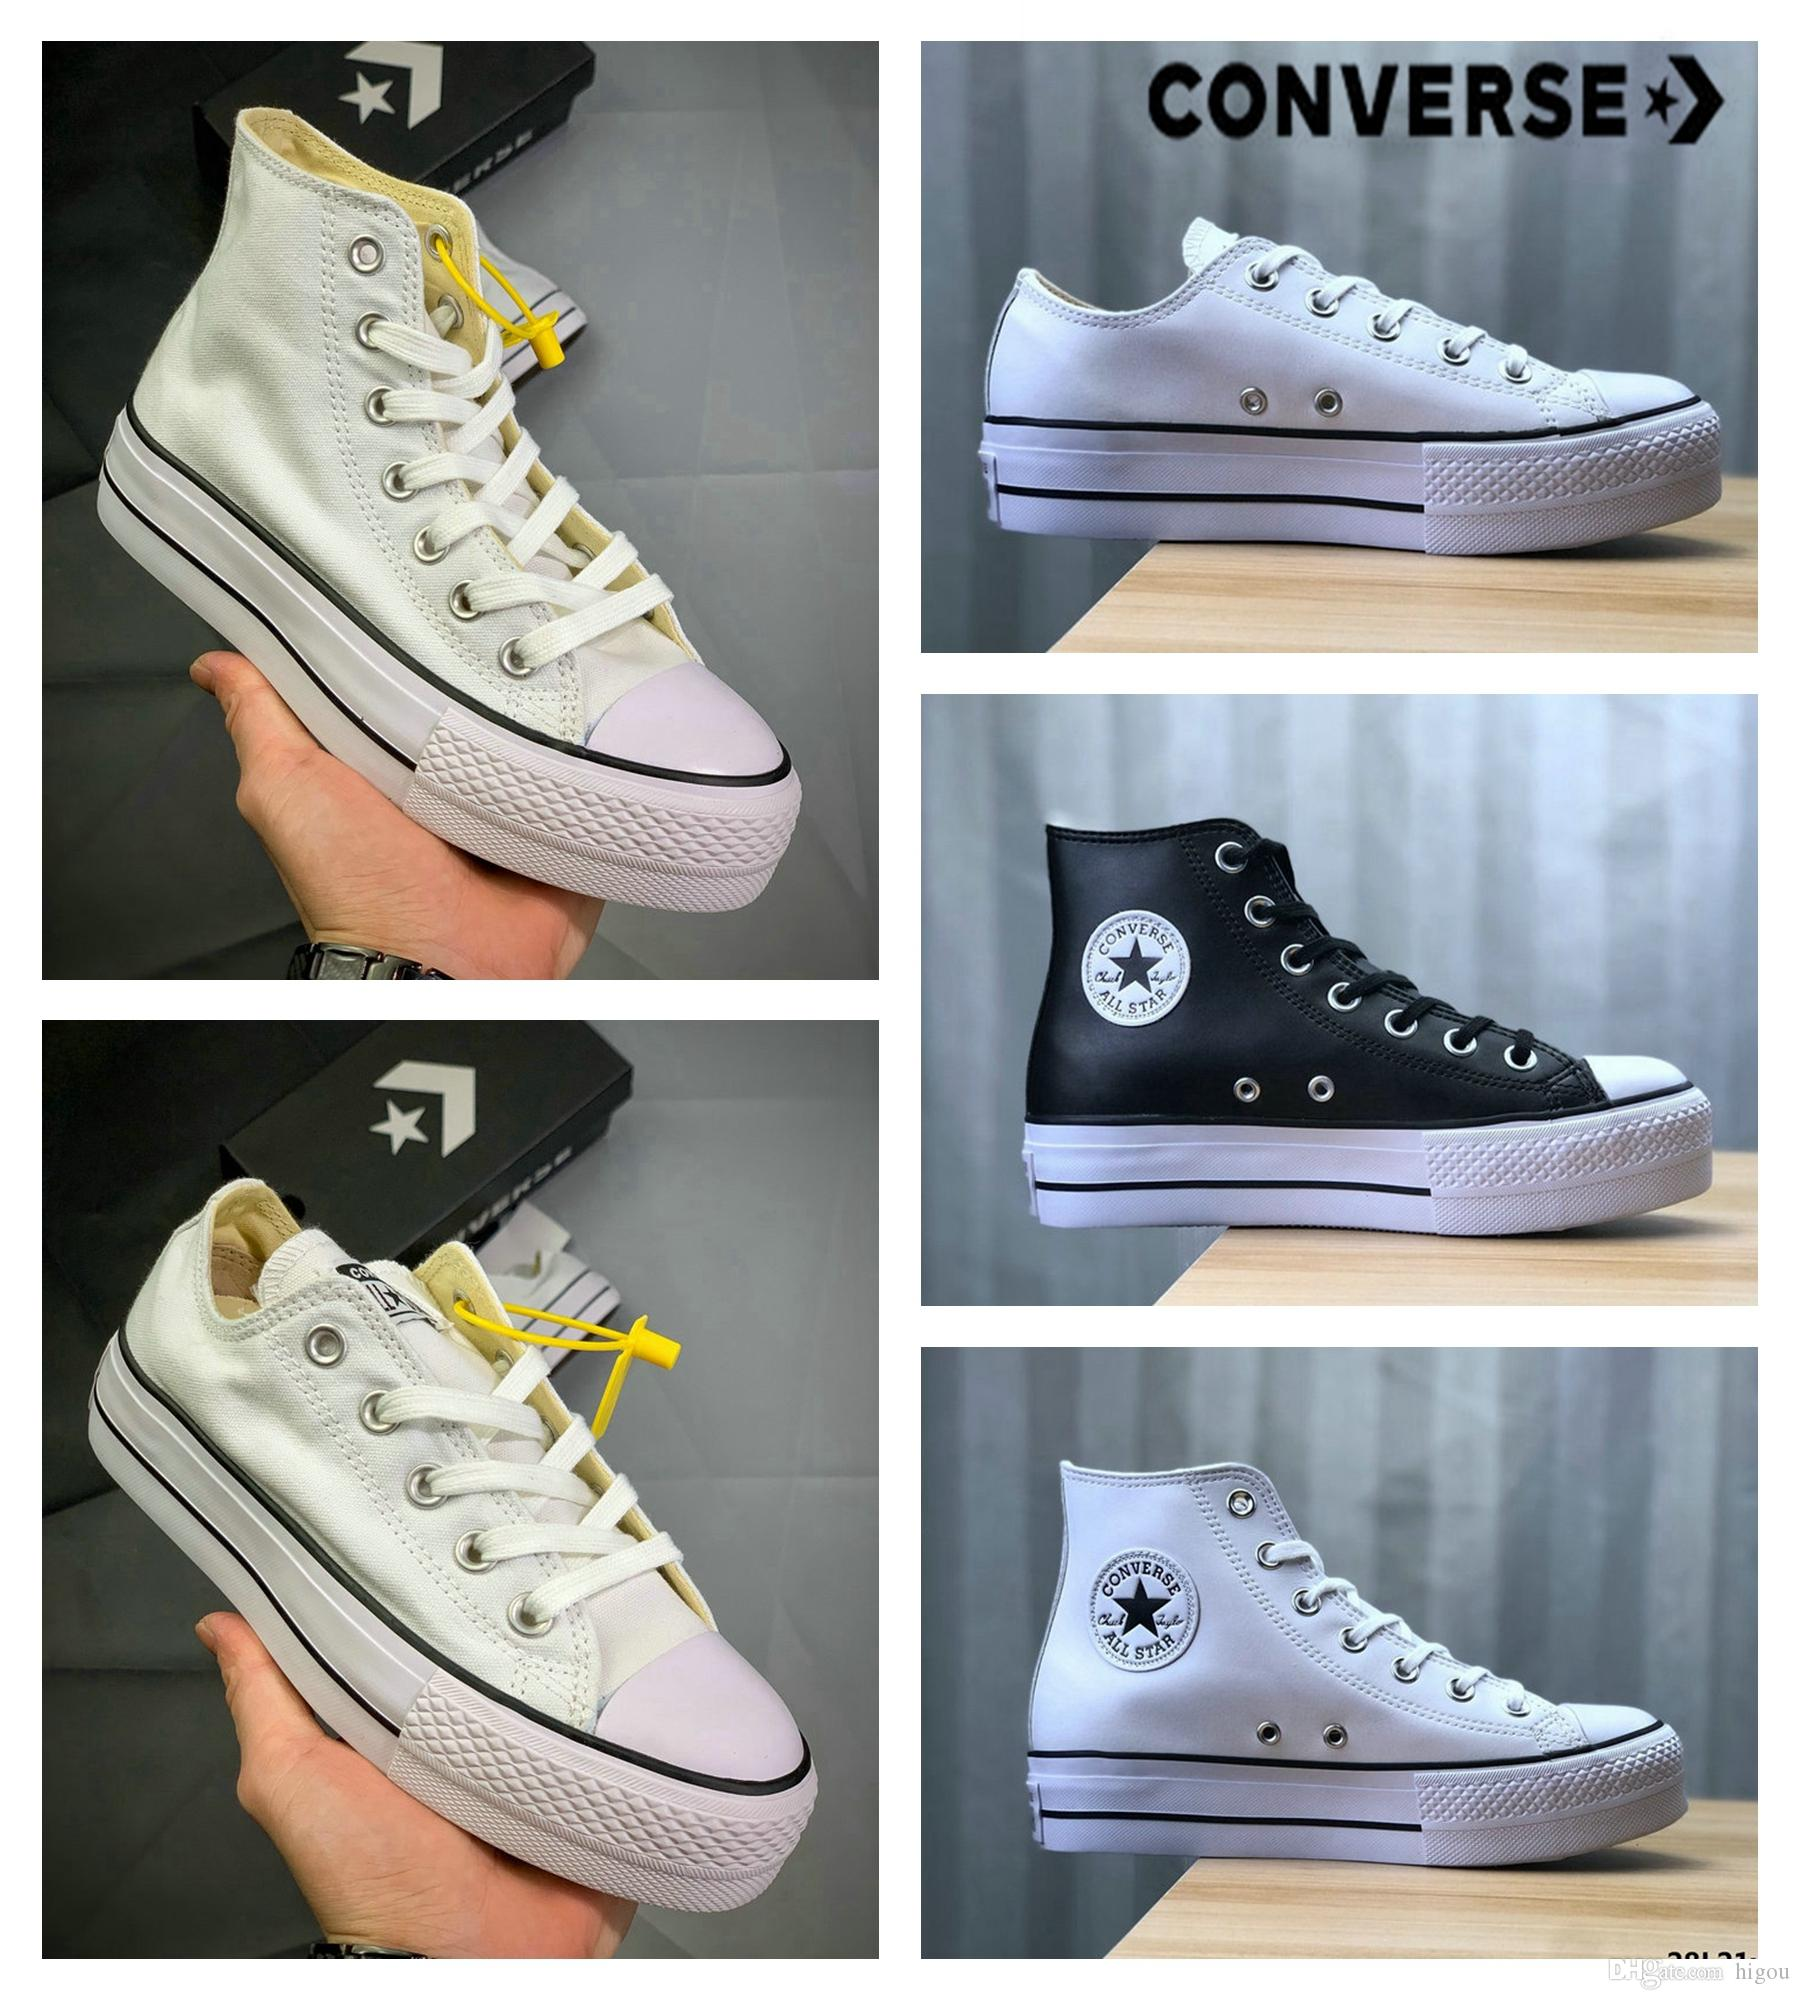 2020 New Converse All Star Hi Platform Shoes Women Fashion High Top Heels Luxury Designer Sneakers Casual Chuck White Skateboard 35 40 Sperry Shoes